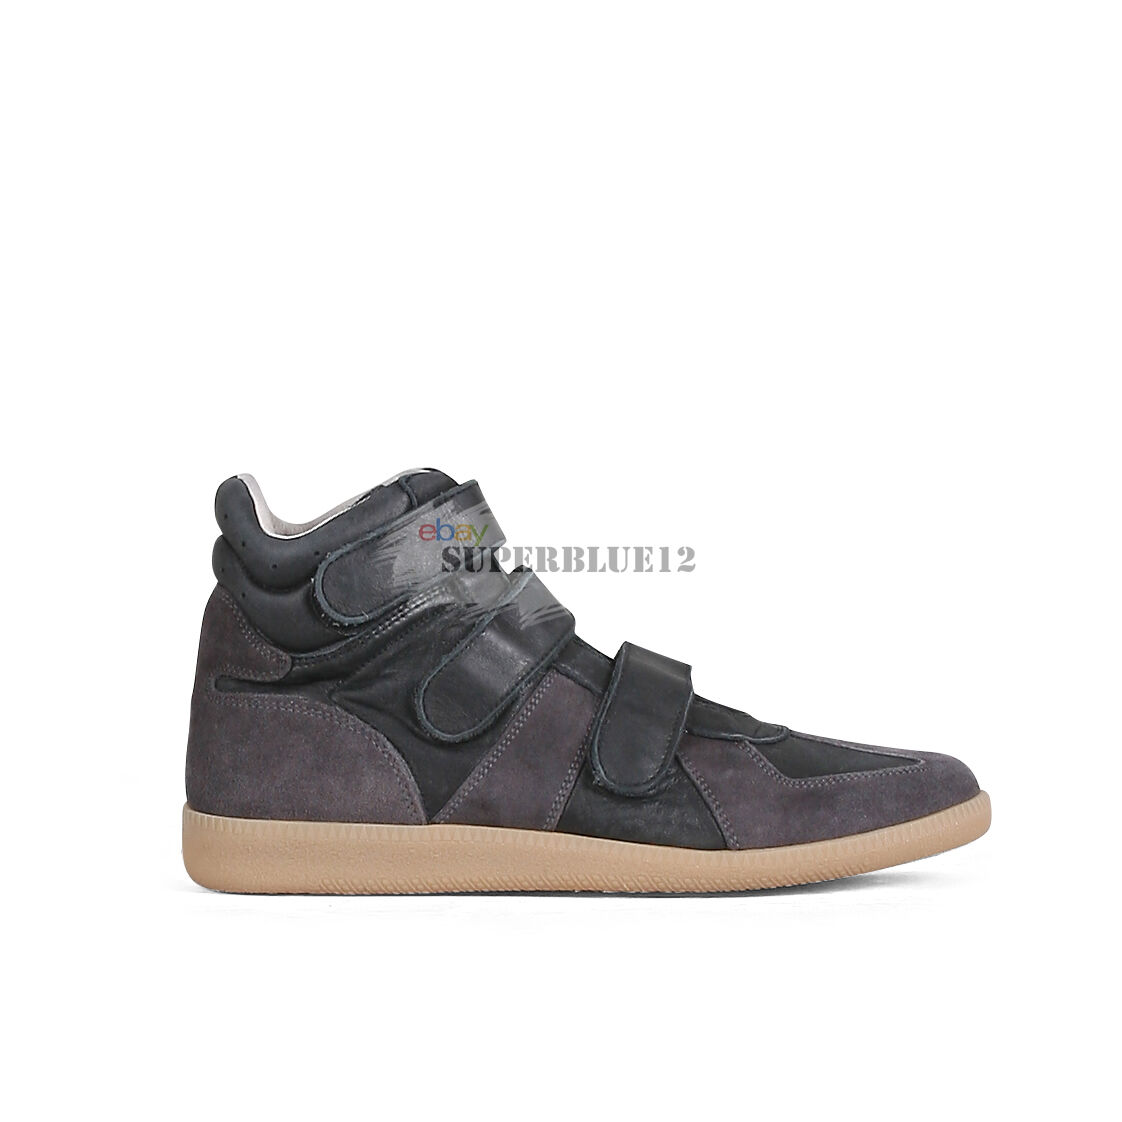 MAISON MARTIN MARGIELA GERMAN ARMY TRAINERS HIGH TOP SNEAKERS